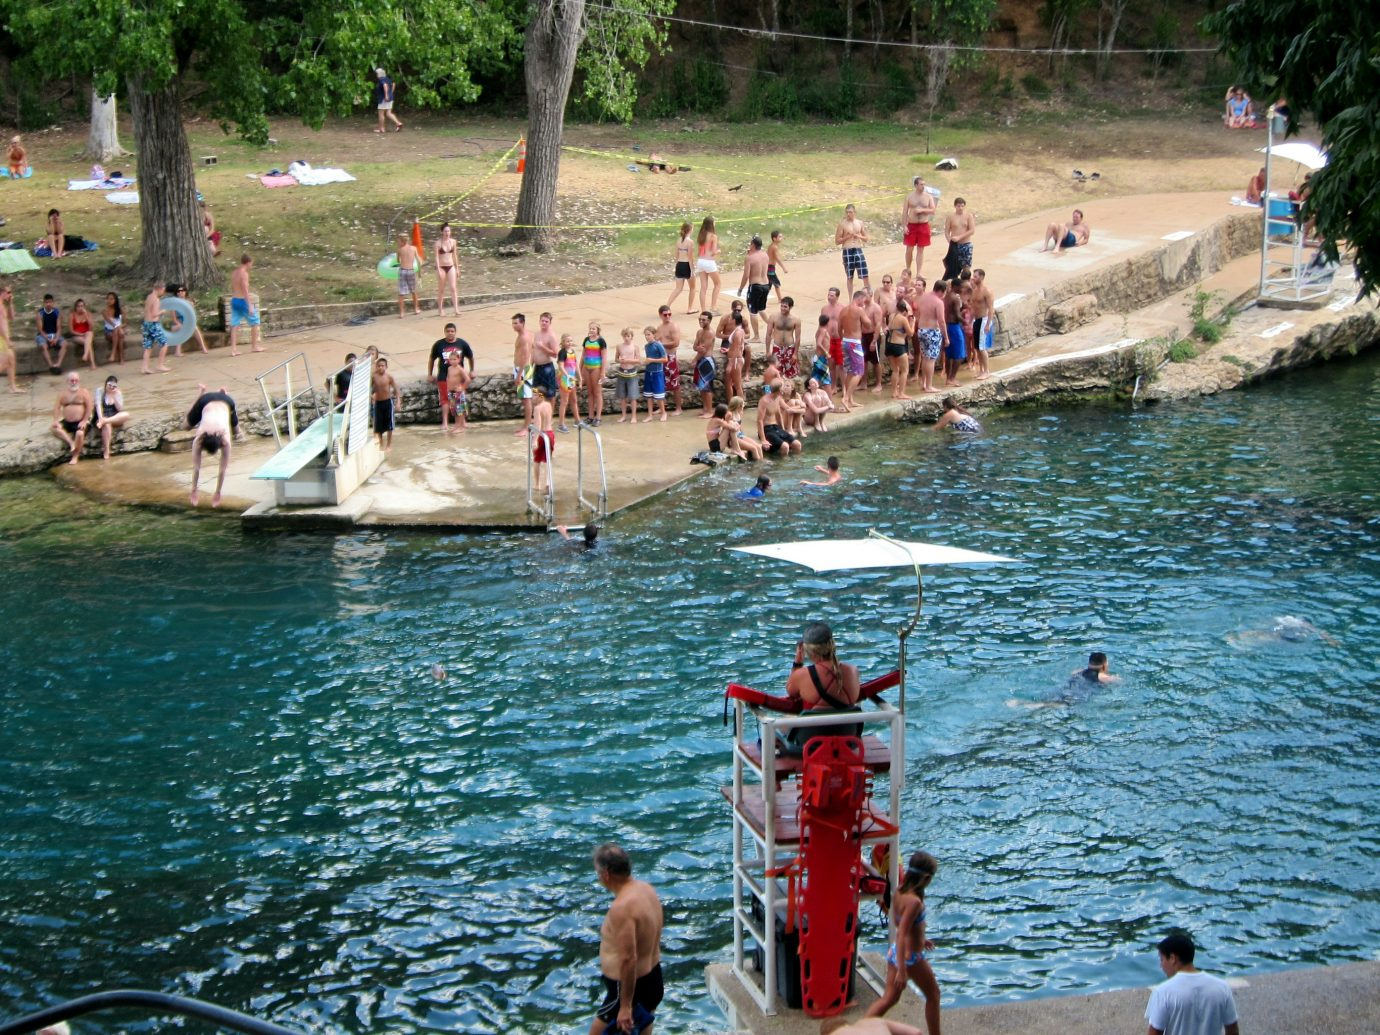 Offbeat water tree outdoor boating tourism vacation Boat vehicle Sea swimming pool endurance sports people swimming several